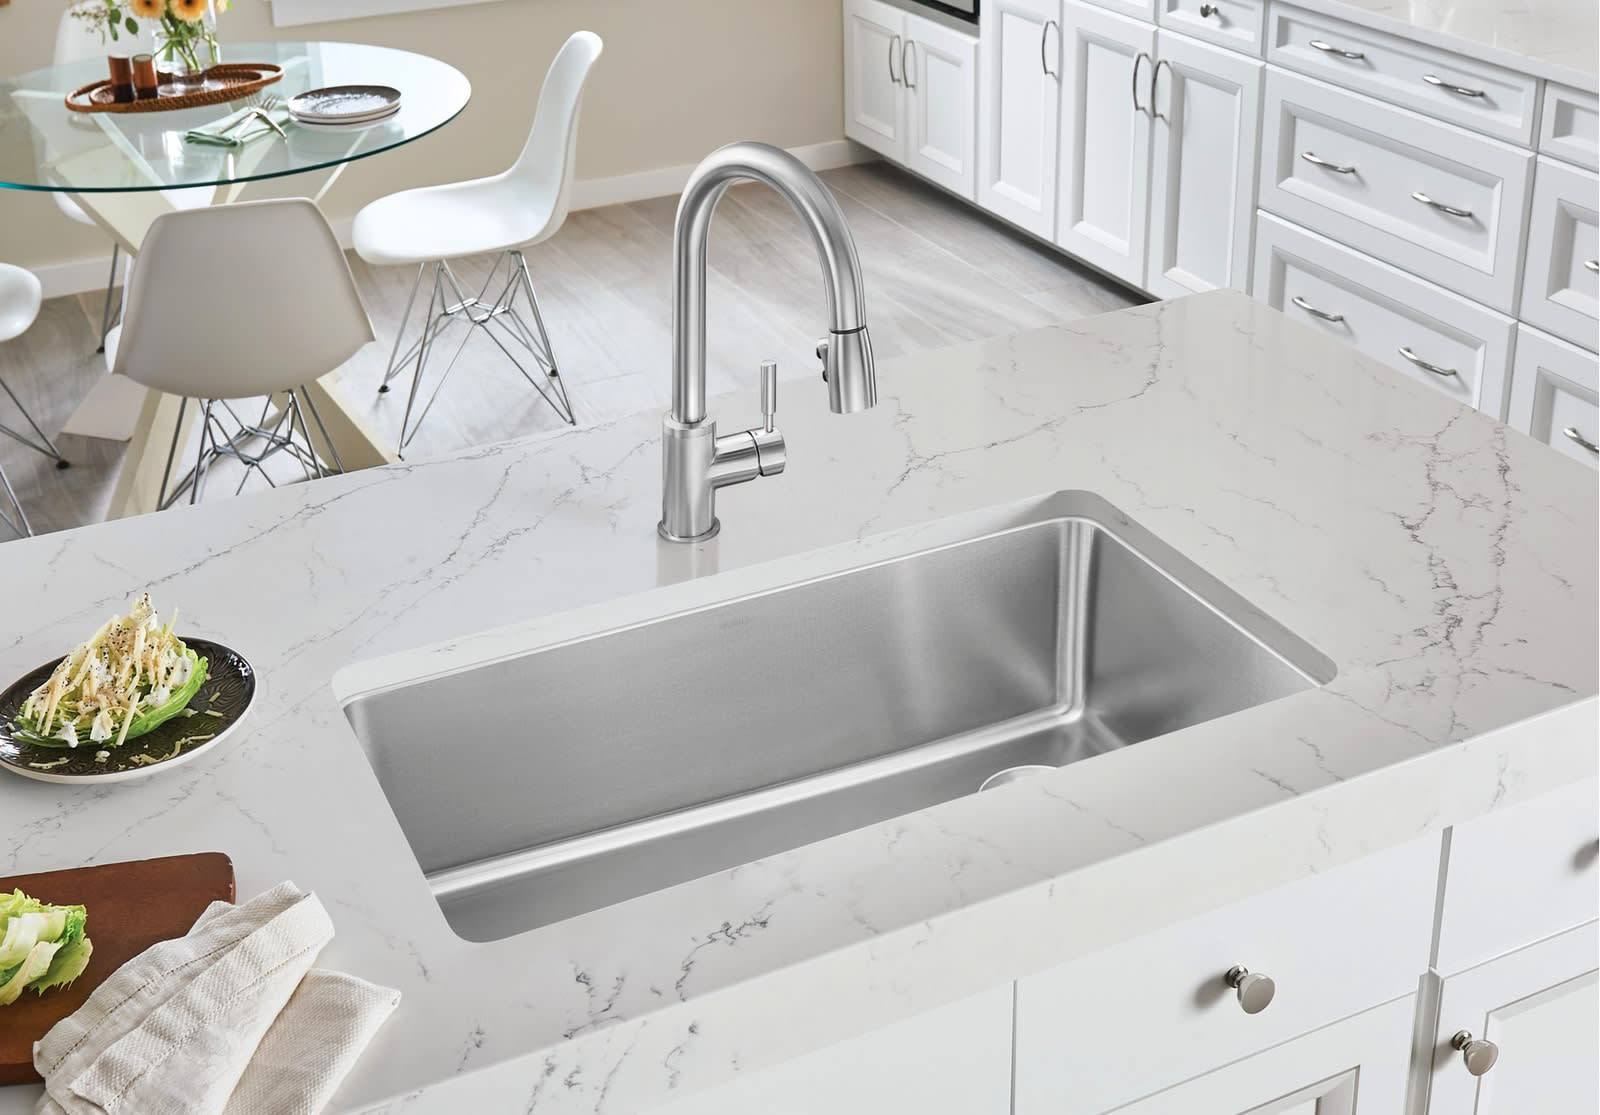 blano stainless steel kitchen sink with corner drain used in the parklane kitchens by eggersmann